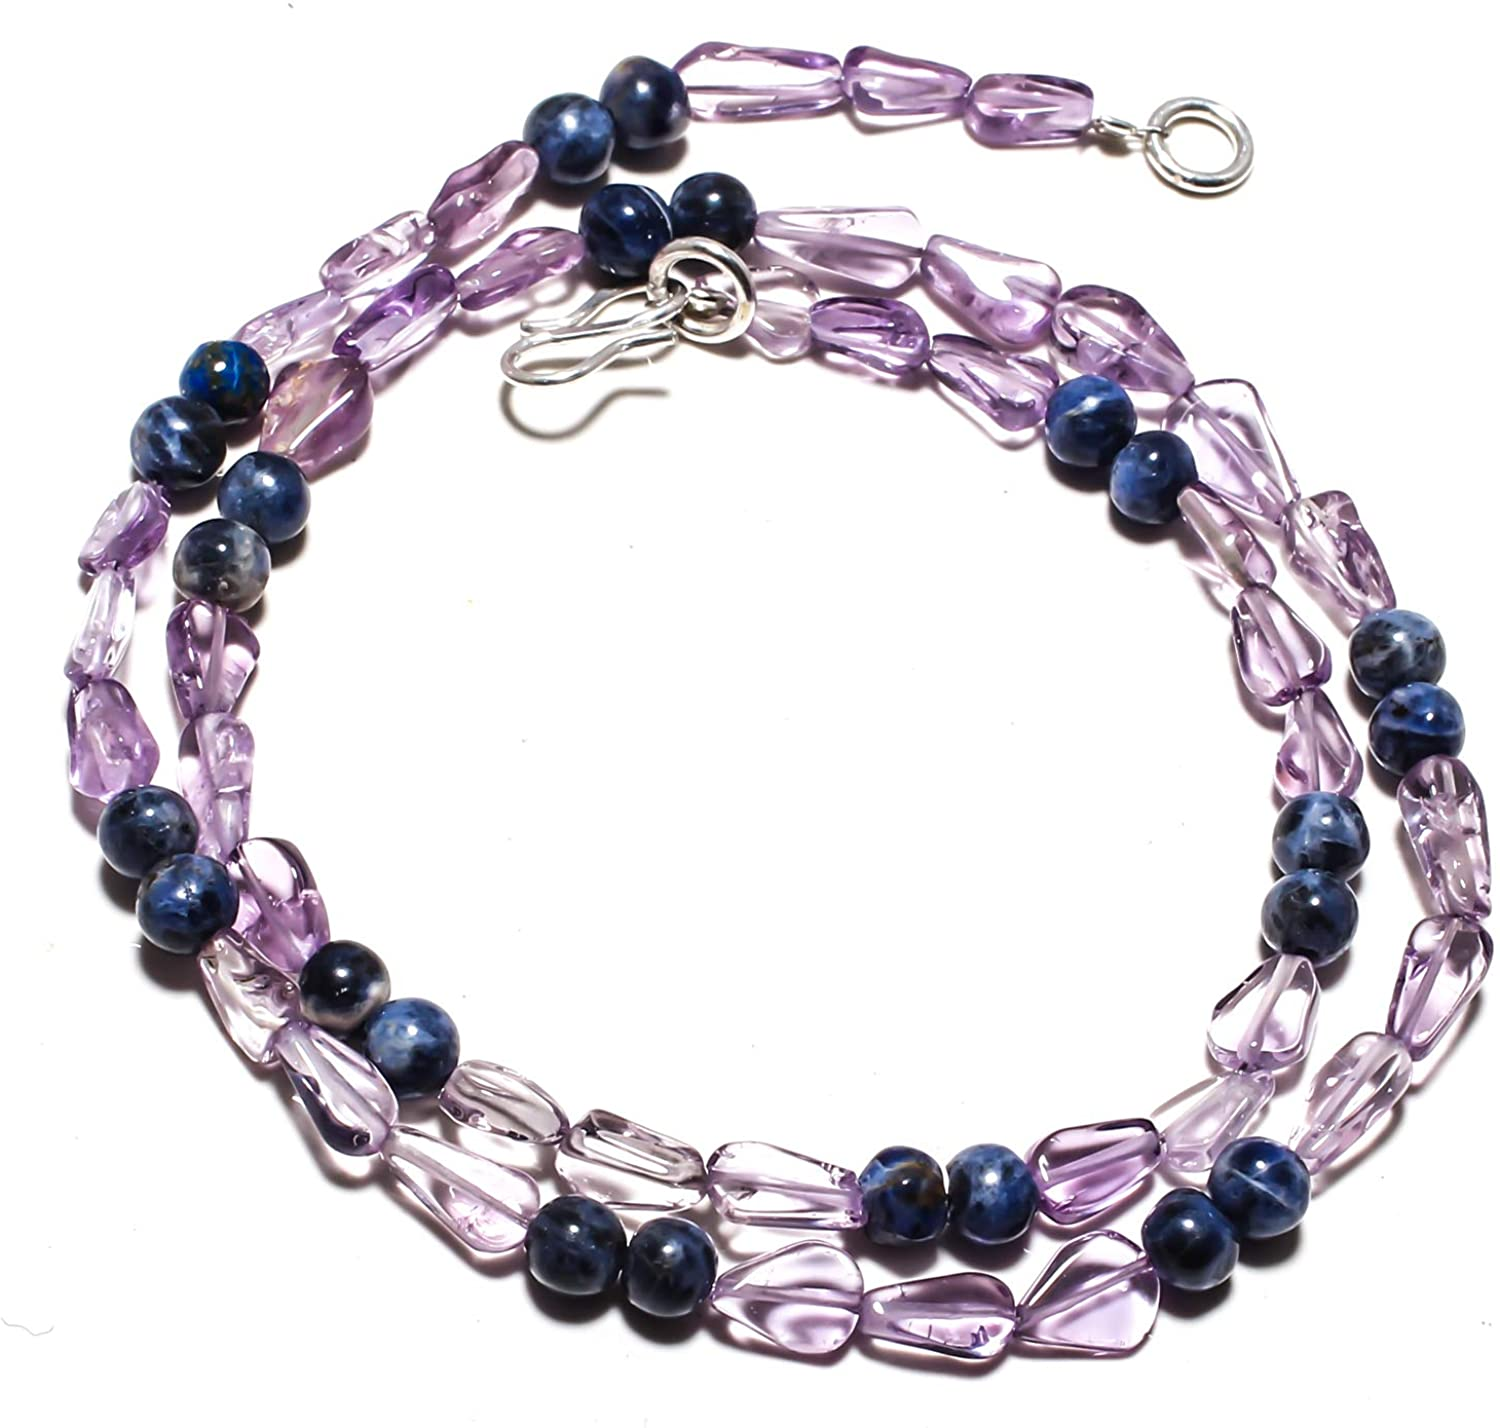 kanta incorporation Amethyst Natural Gemstone Beads Jewelry Necklace 17